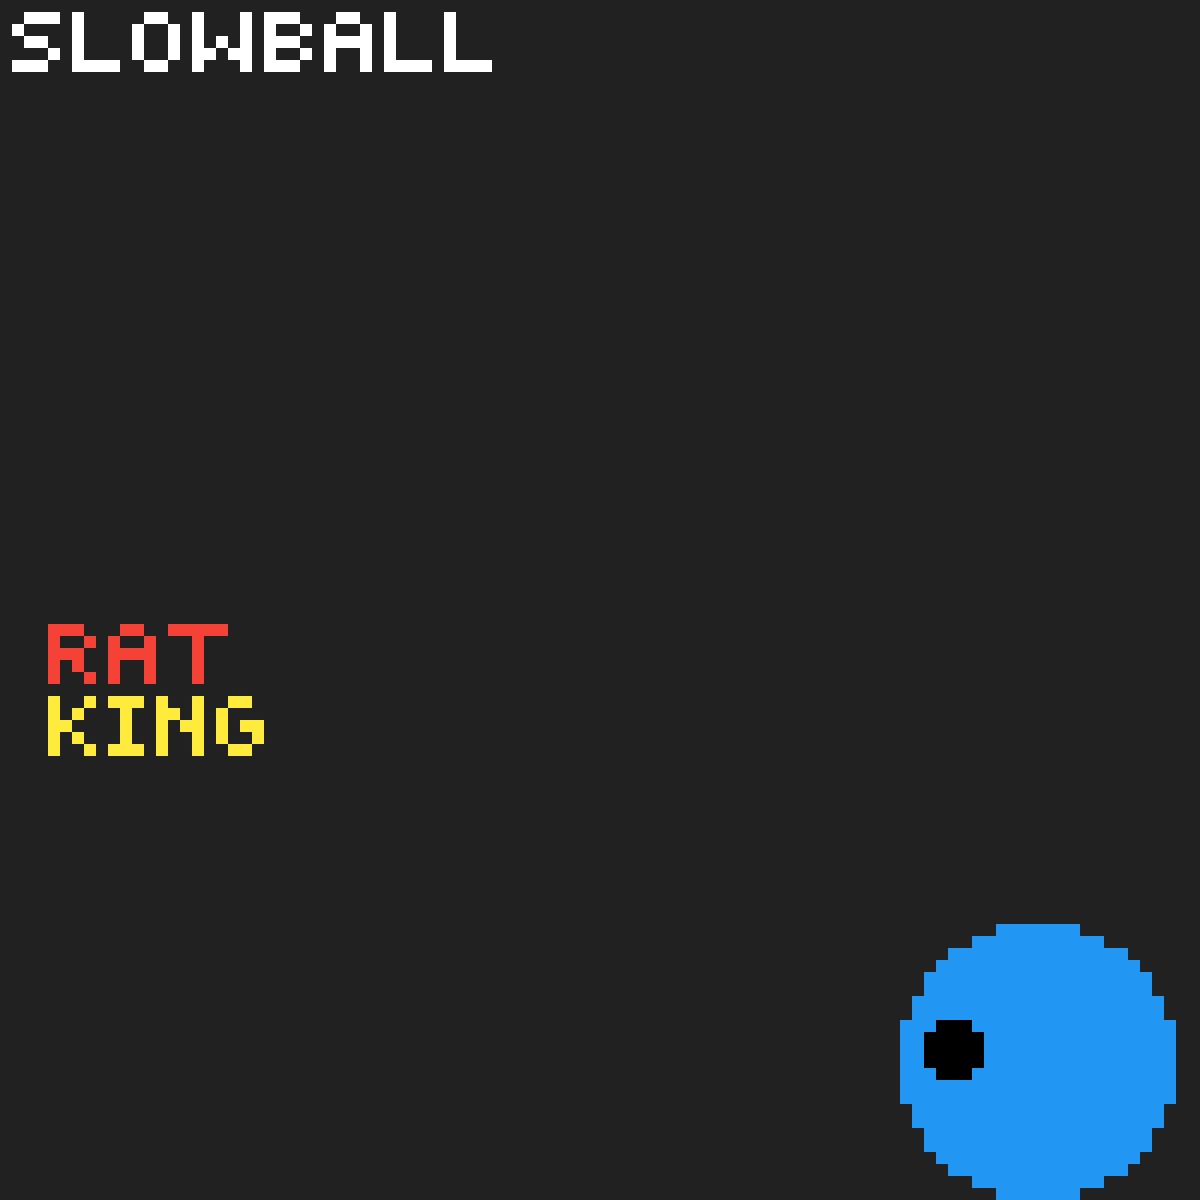 Slowball by Rat-King